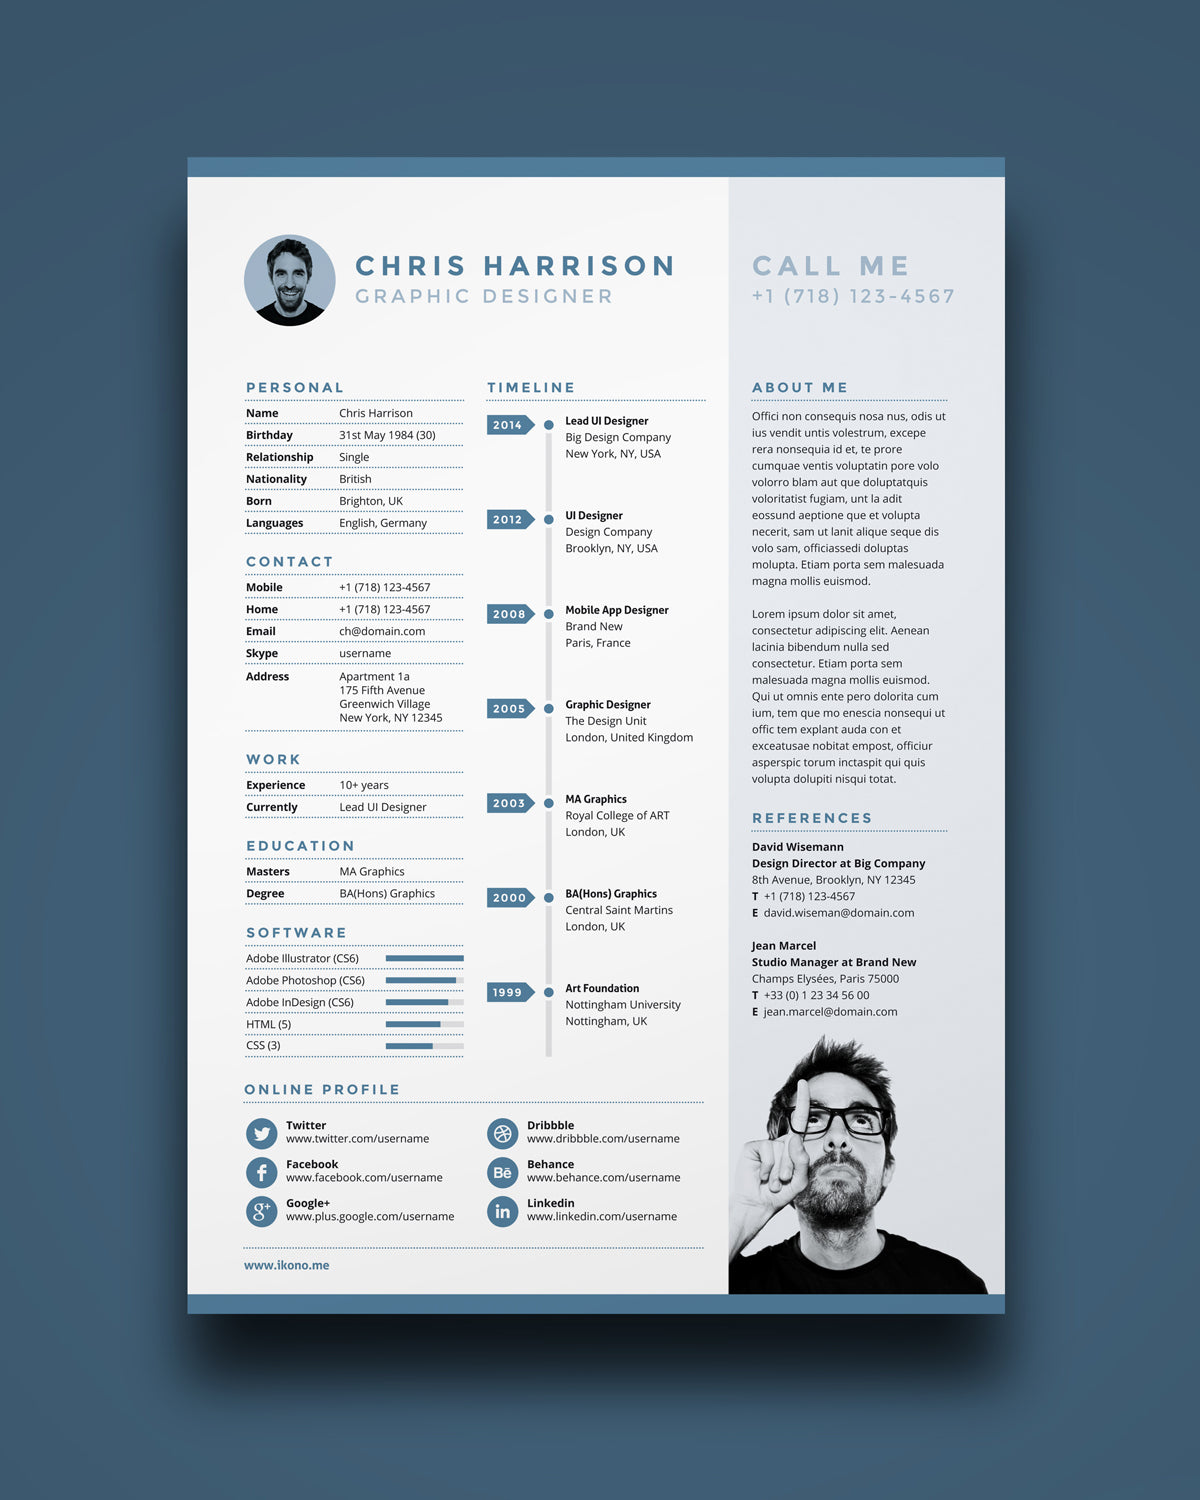 Free Resume Template In Photoshop PSD Illustrator AI And Indesign